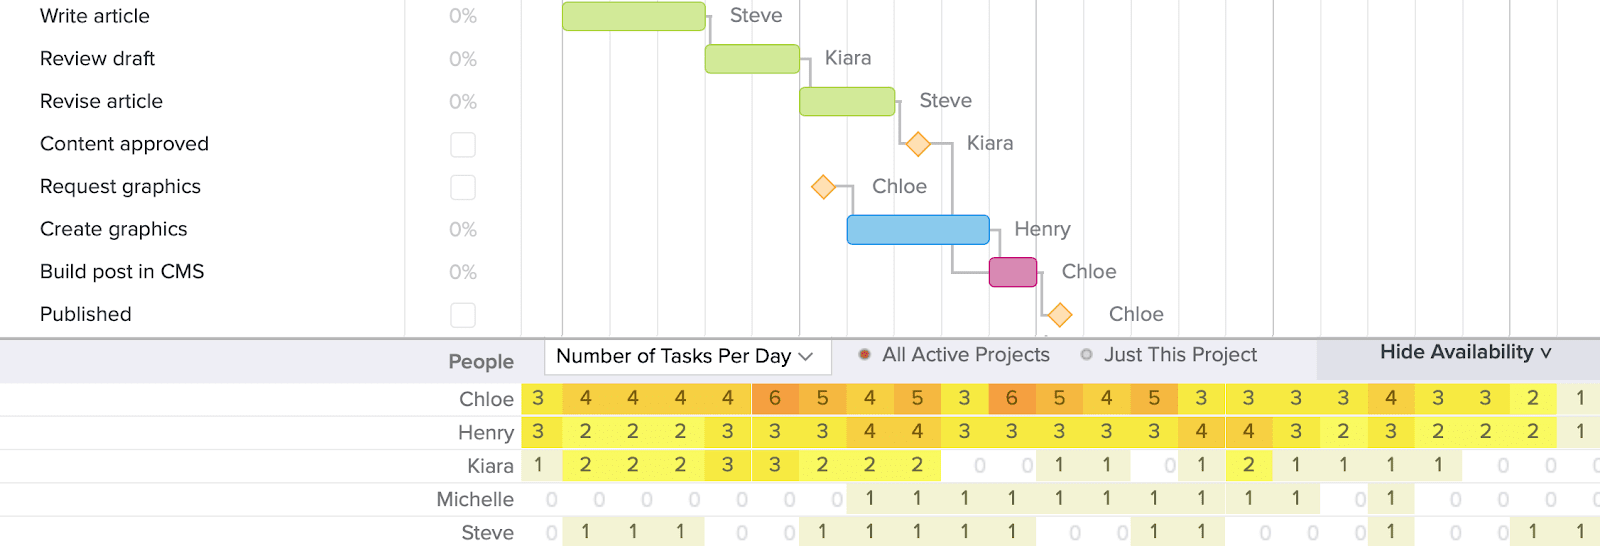 Gantt chart with team availability heatmap showing at the bottom